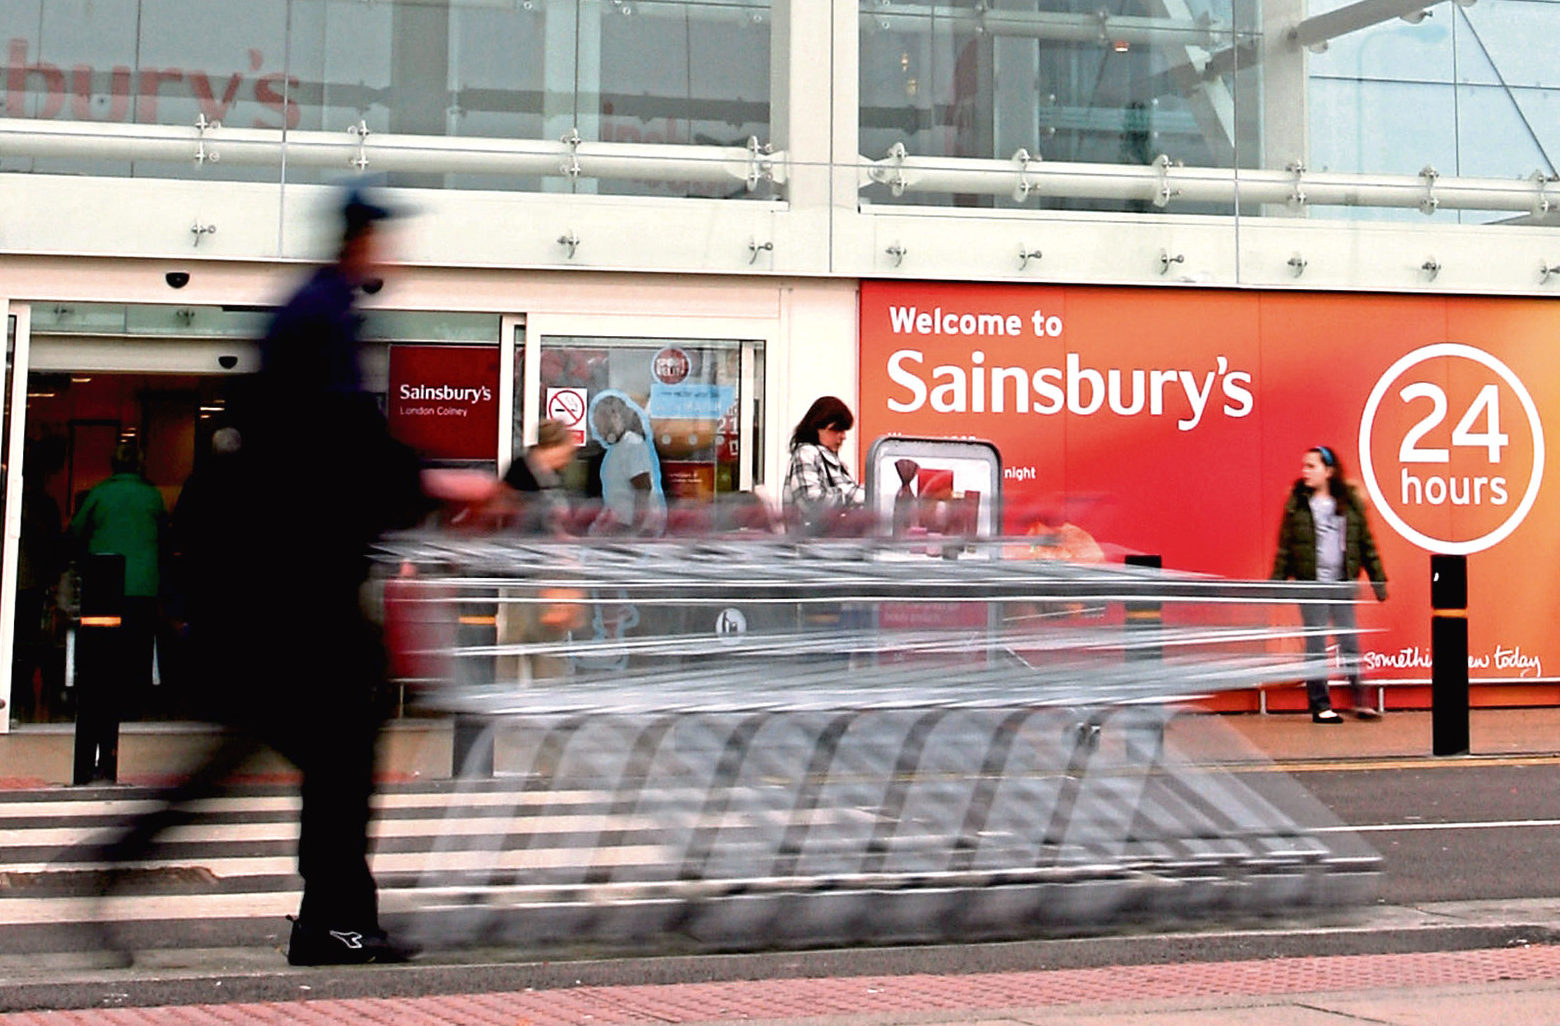 Sainsbury's says it is yet to receive a list of vulnerable people.